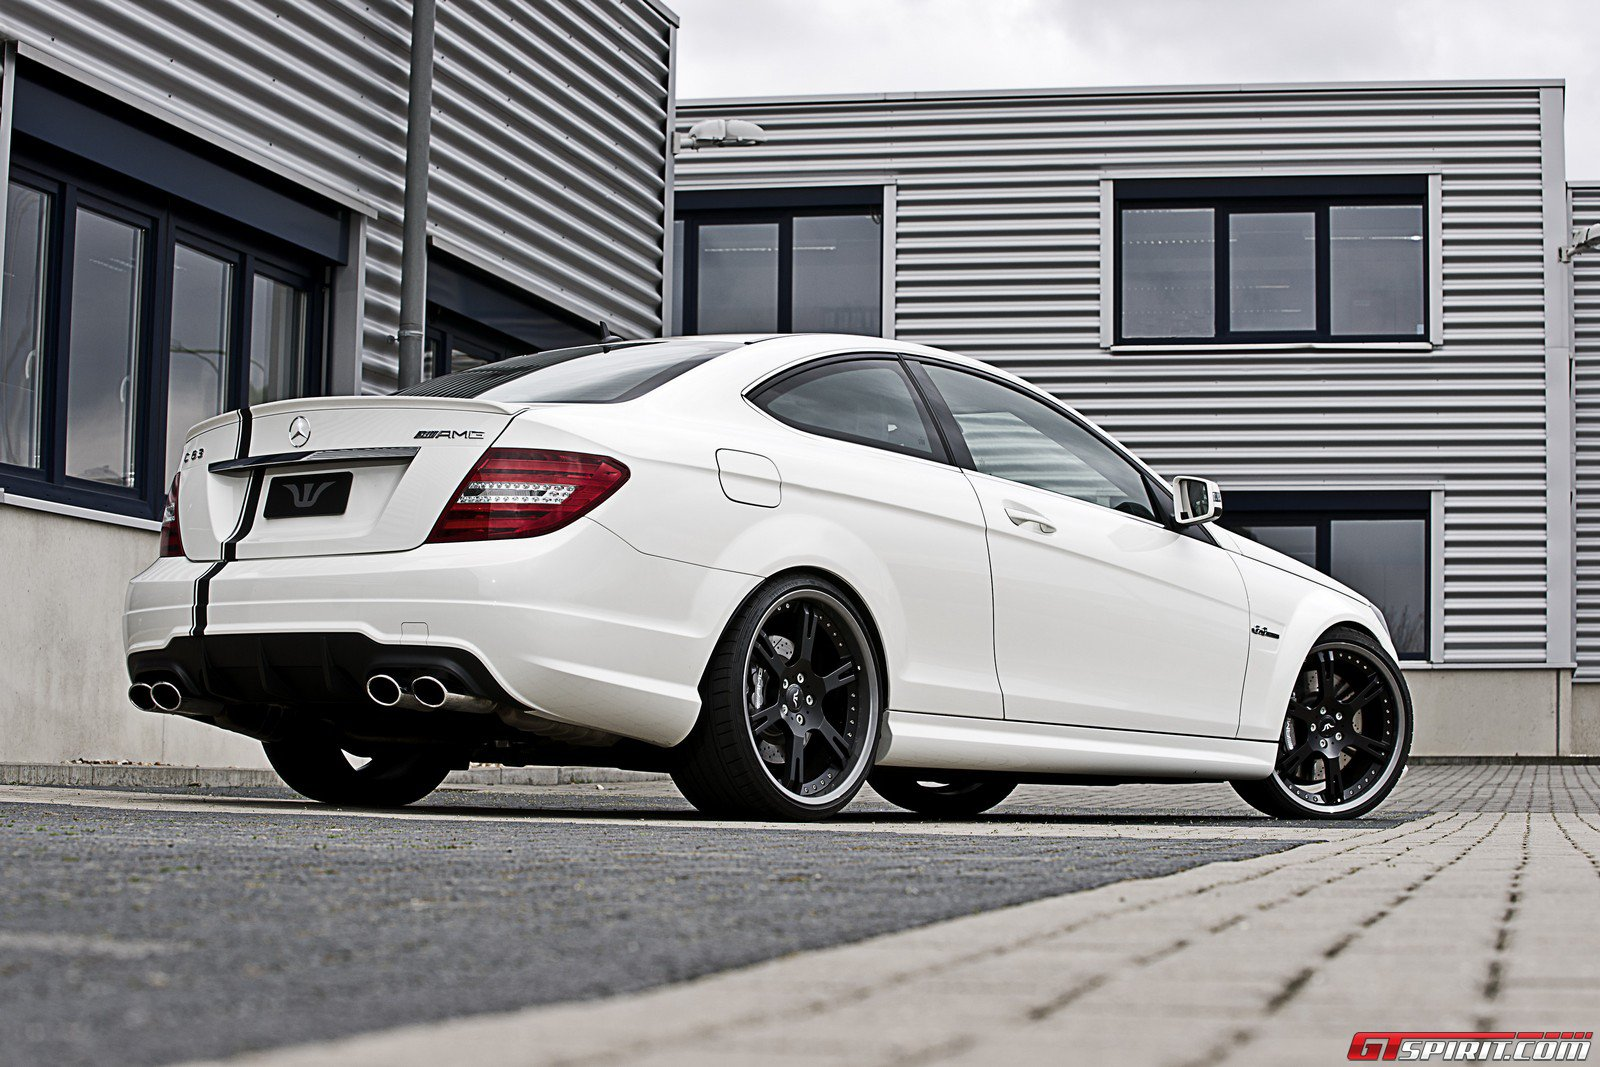 Rims And Tires Canada >> White C63 Coupe on 20's and coilovers by Wheelsandmore ...